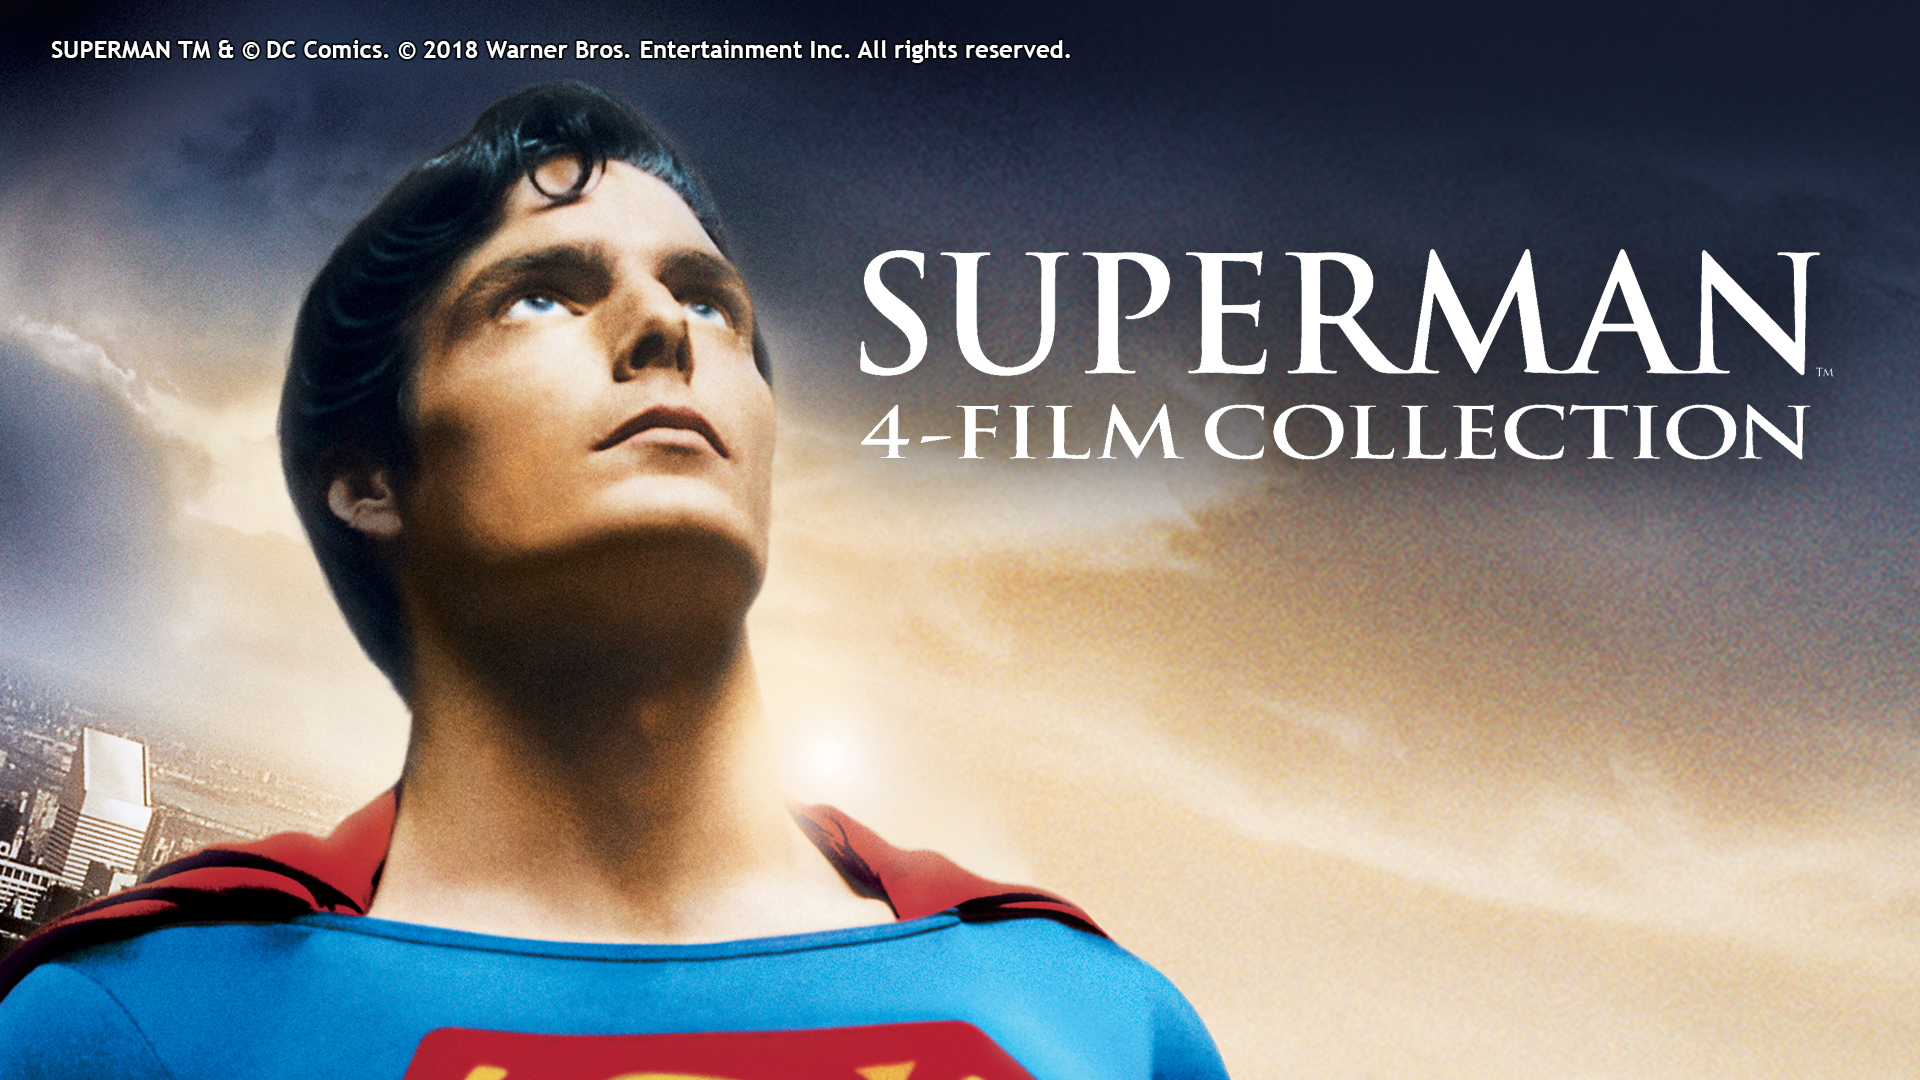 SUPERMAN 4 MOVIE COLLECTION